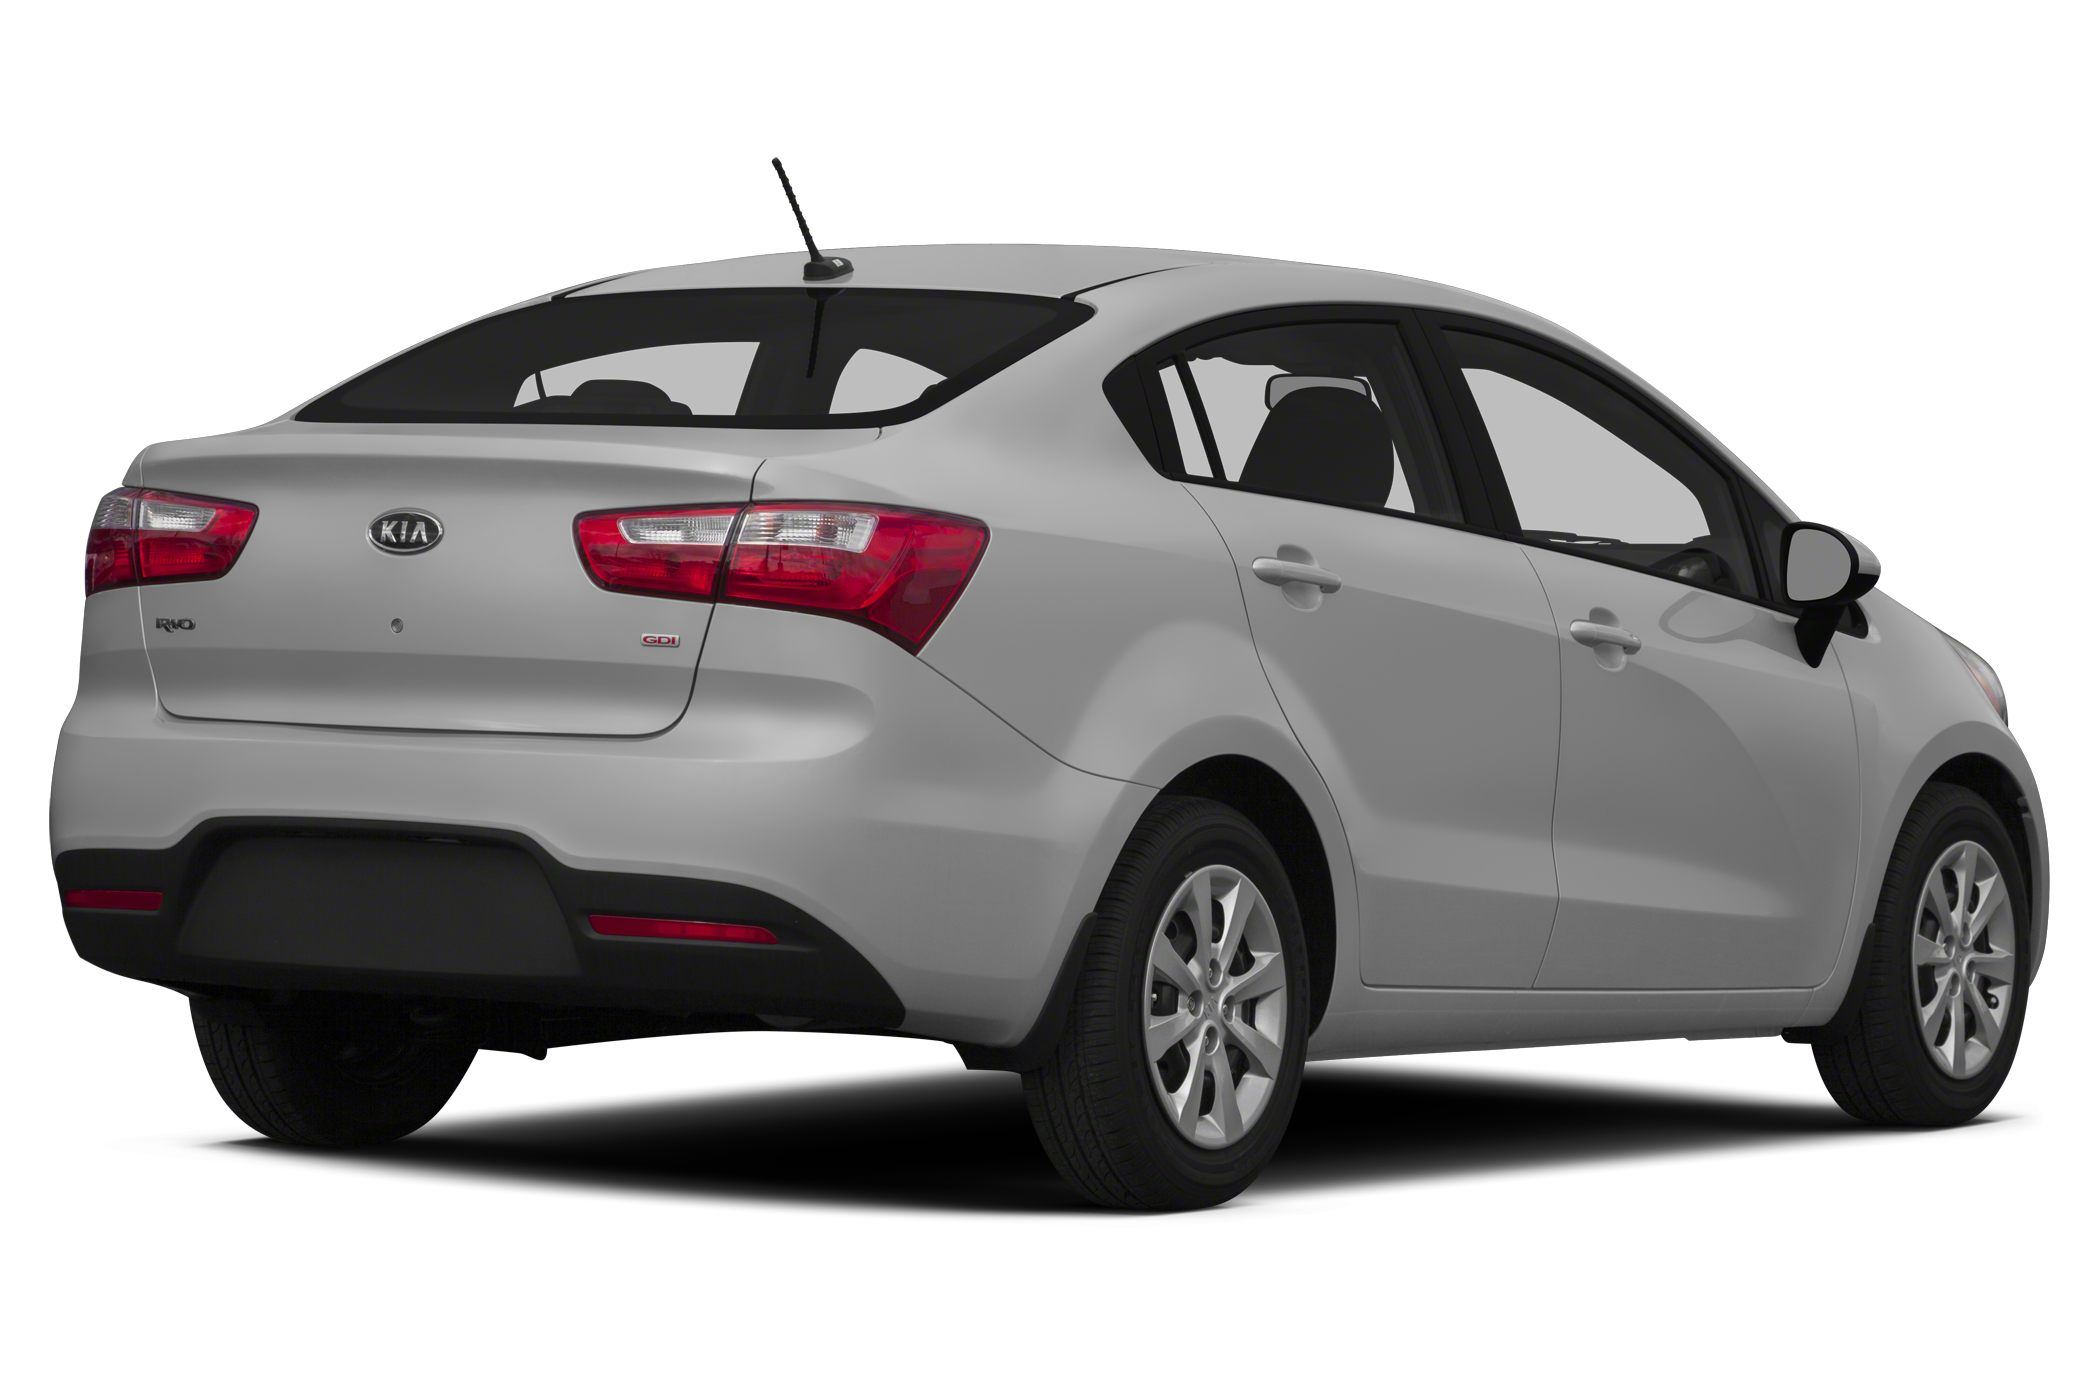 2018 Kia Rio 3 door photo - 1